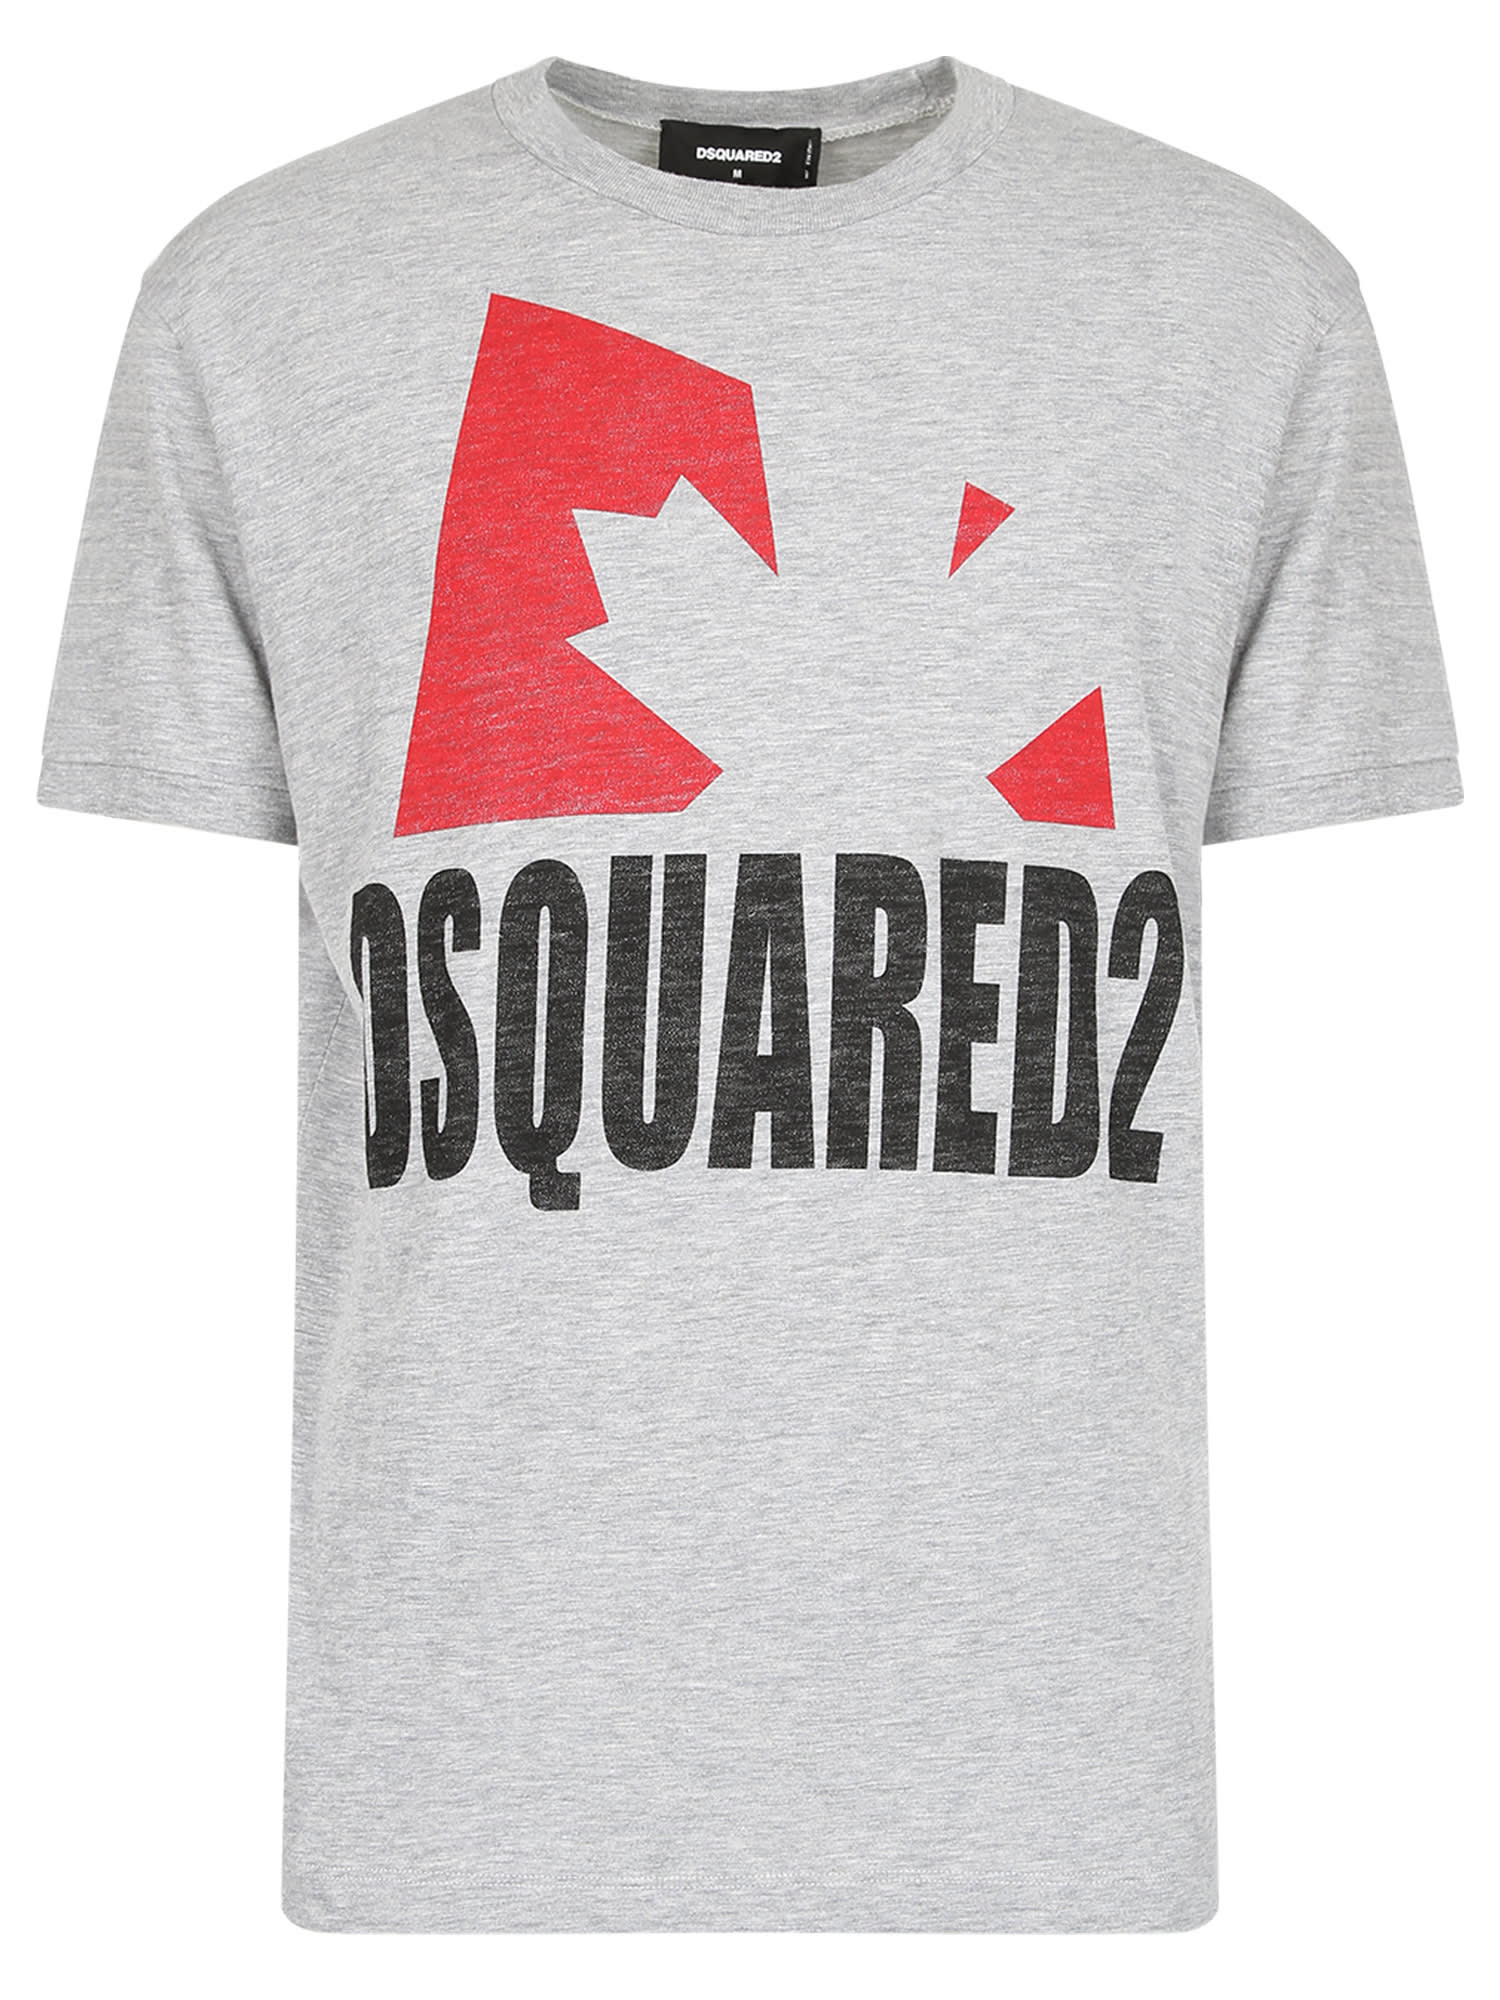 Dsquared2 Branded T-shirt In Grey